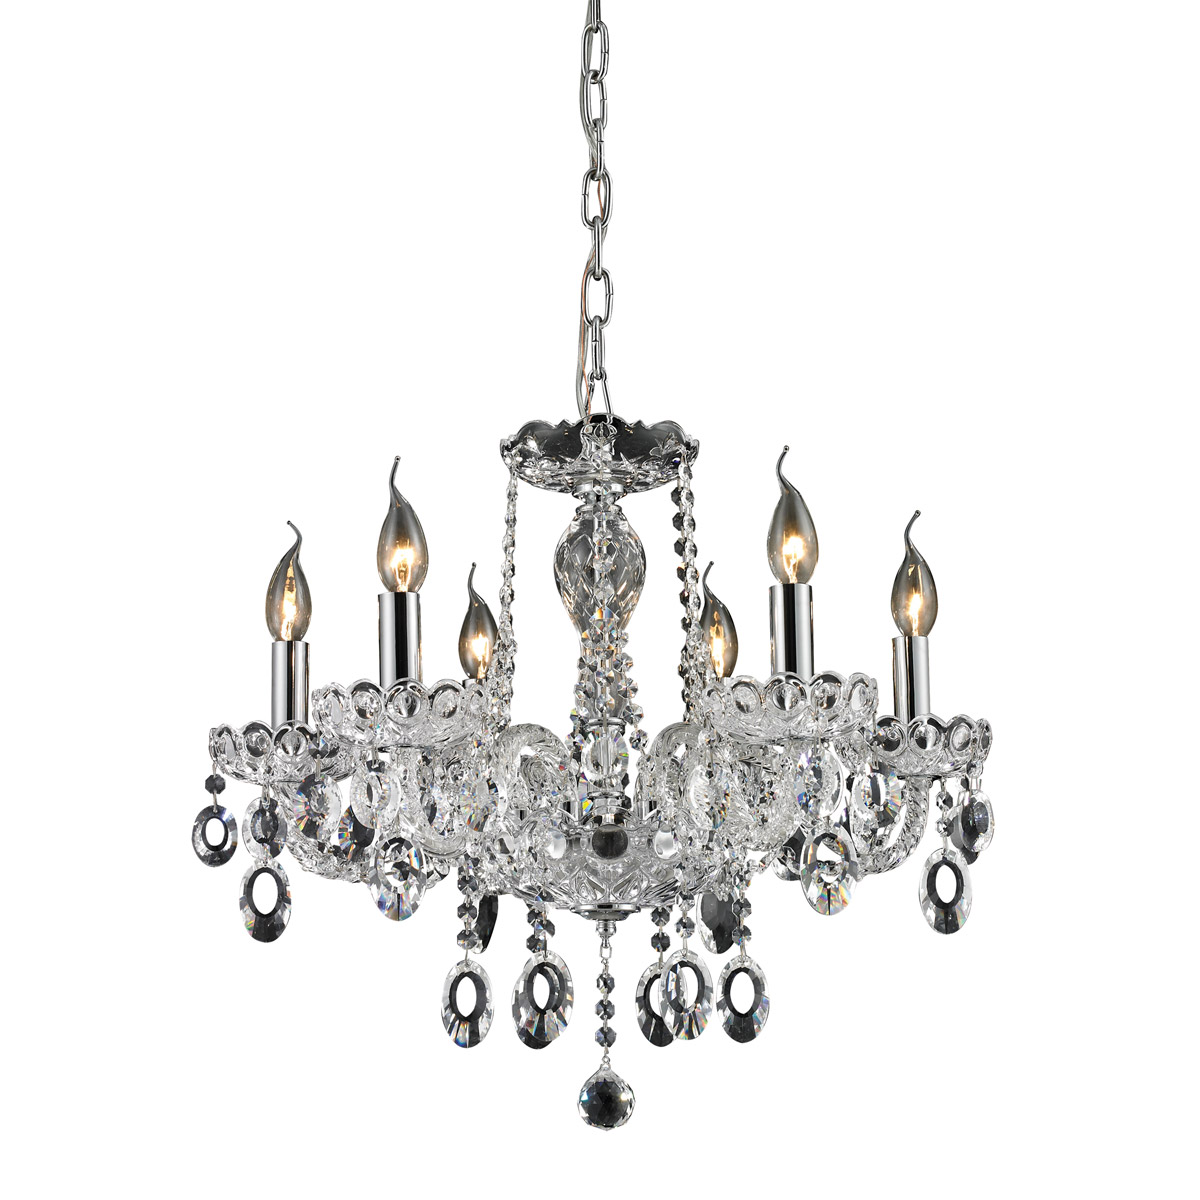 nulco by elk lighting balmoral  light chandelier in clear   - responsive image